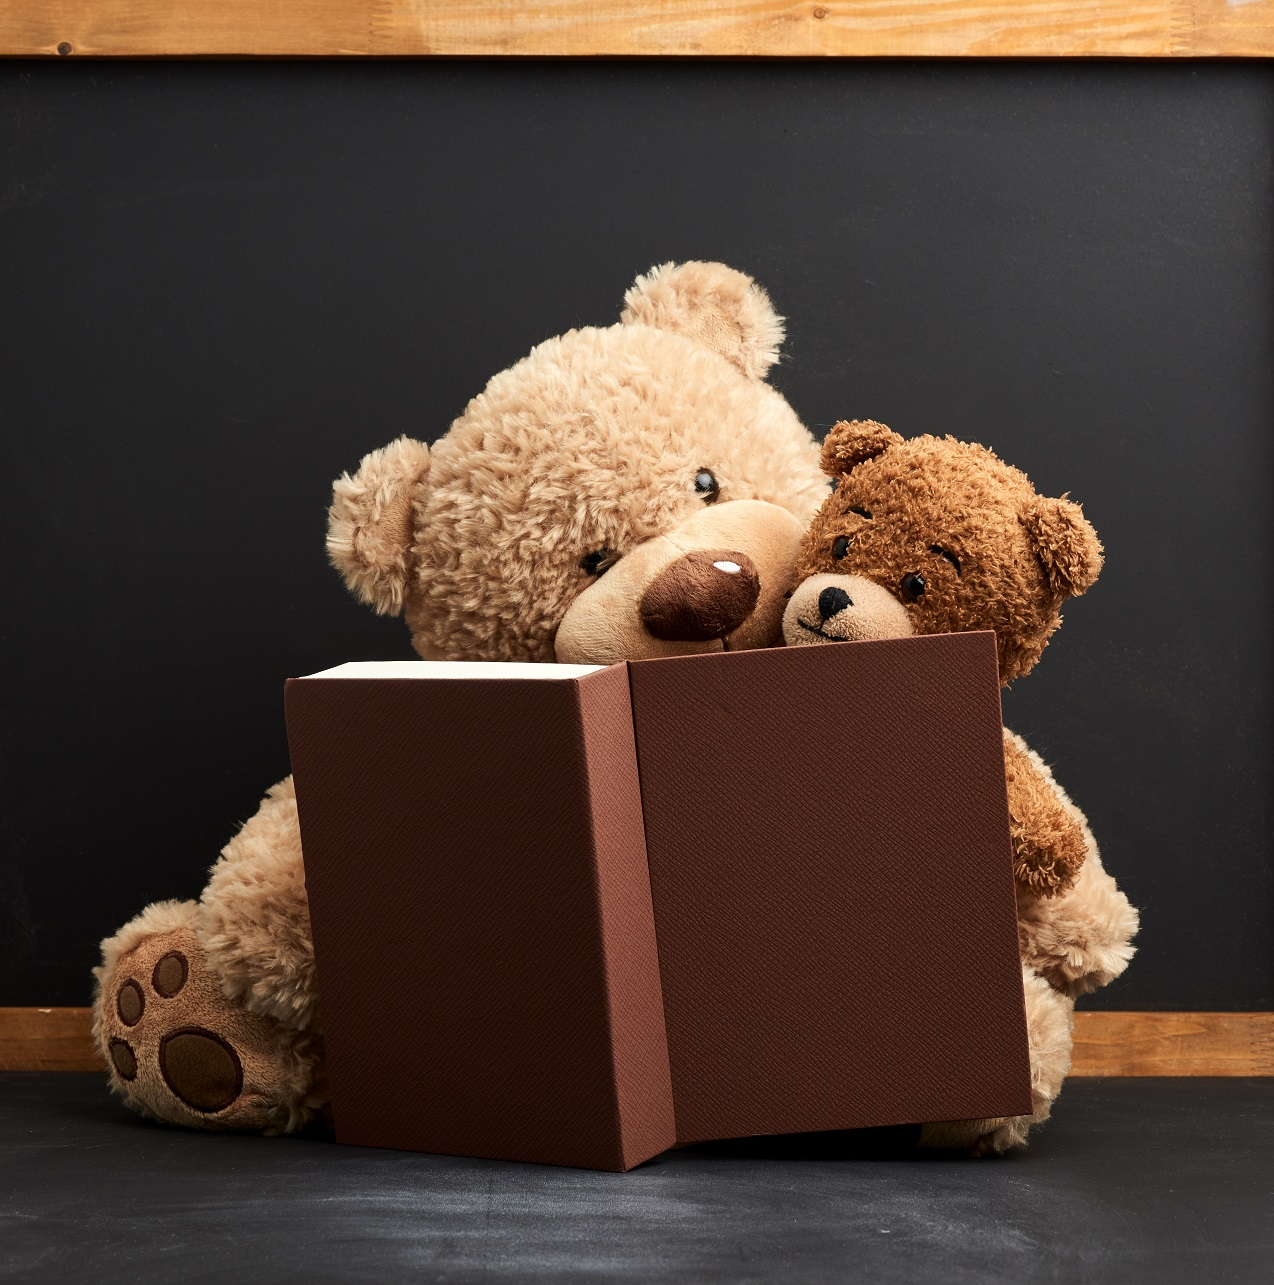 two brown teddy bears are sitting with a book on a black background